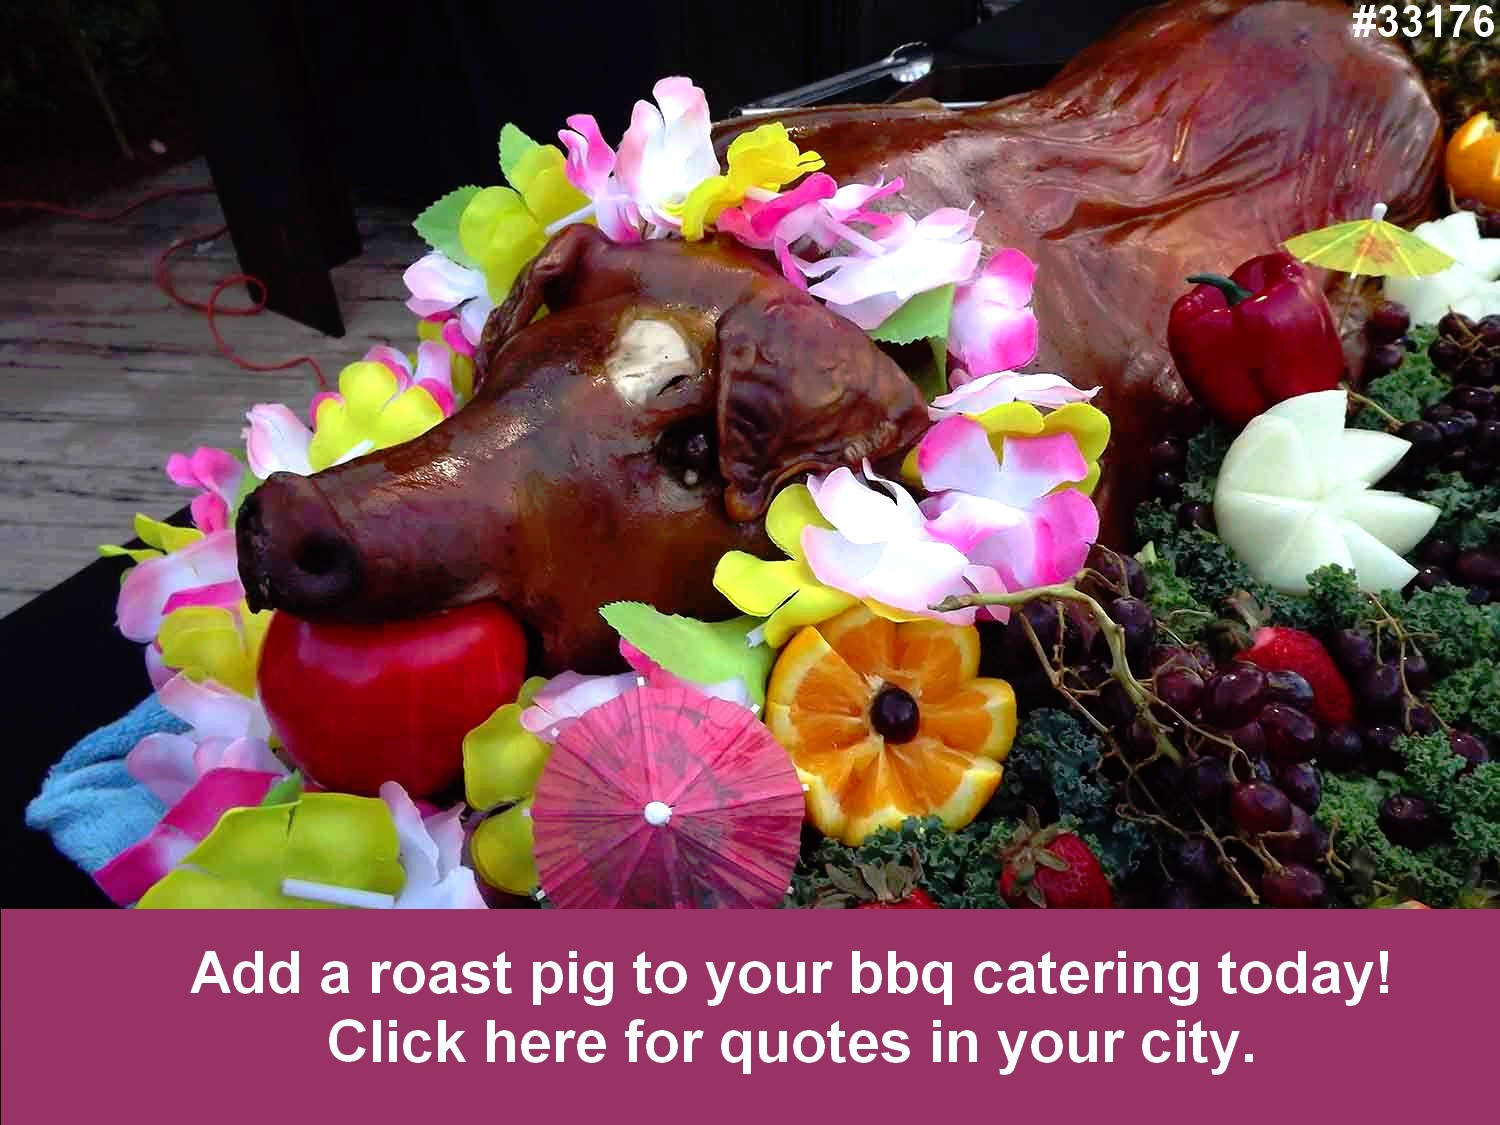 roast pig bbq catering corporate weddings 33176